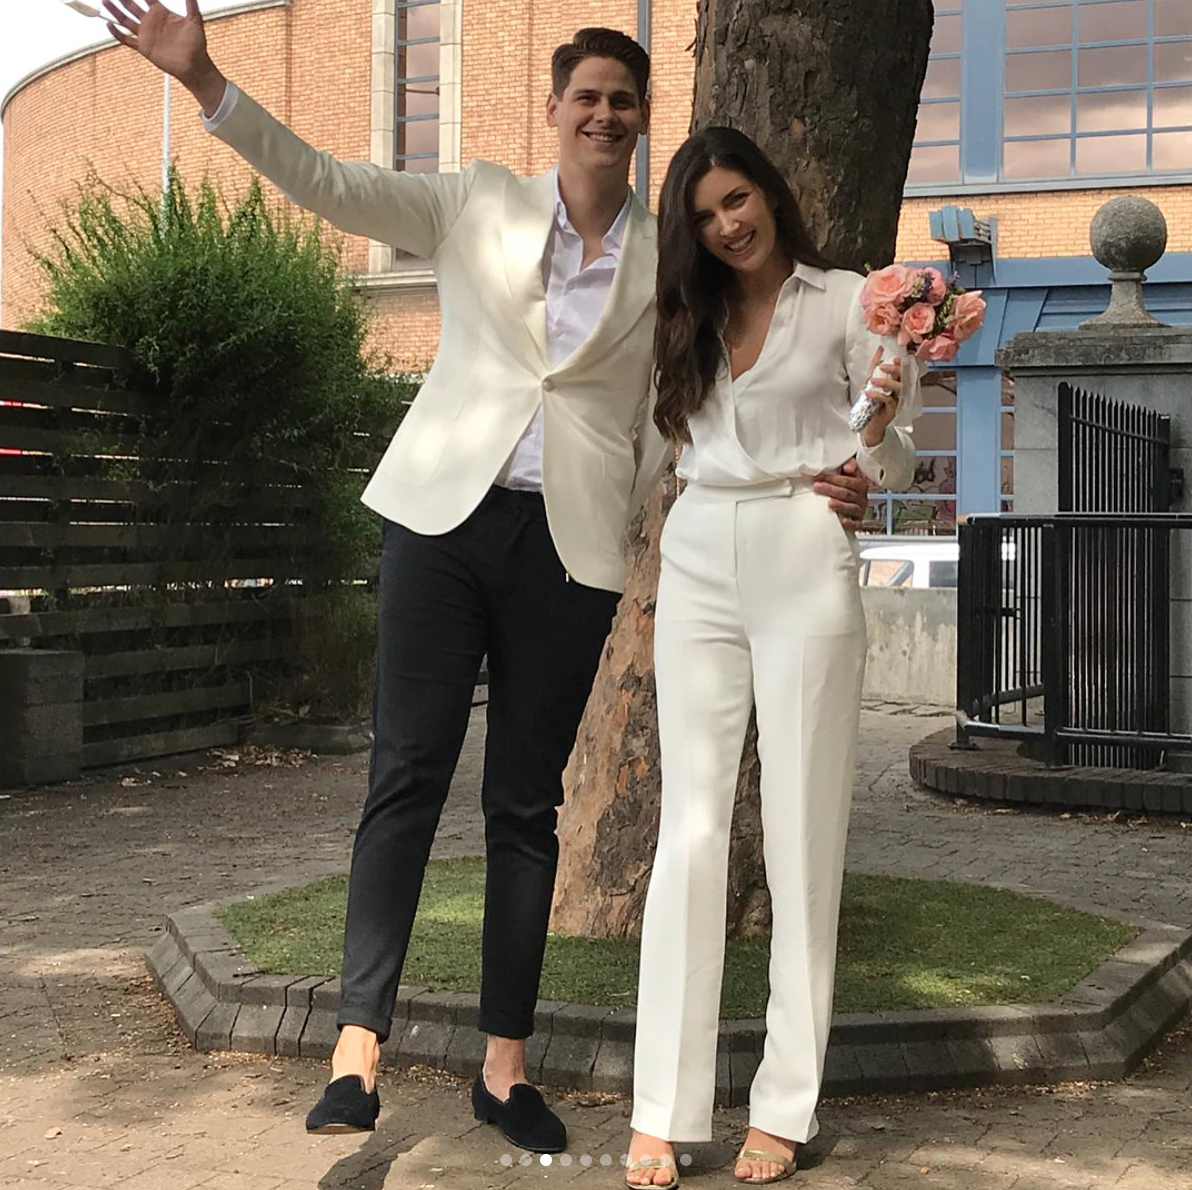 This Irish model just got married in a white jumpsuit and we are WEAK